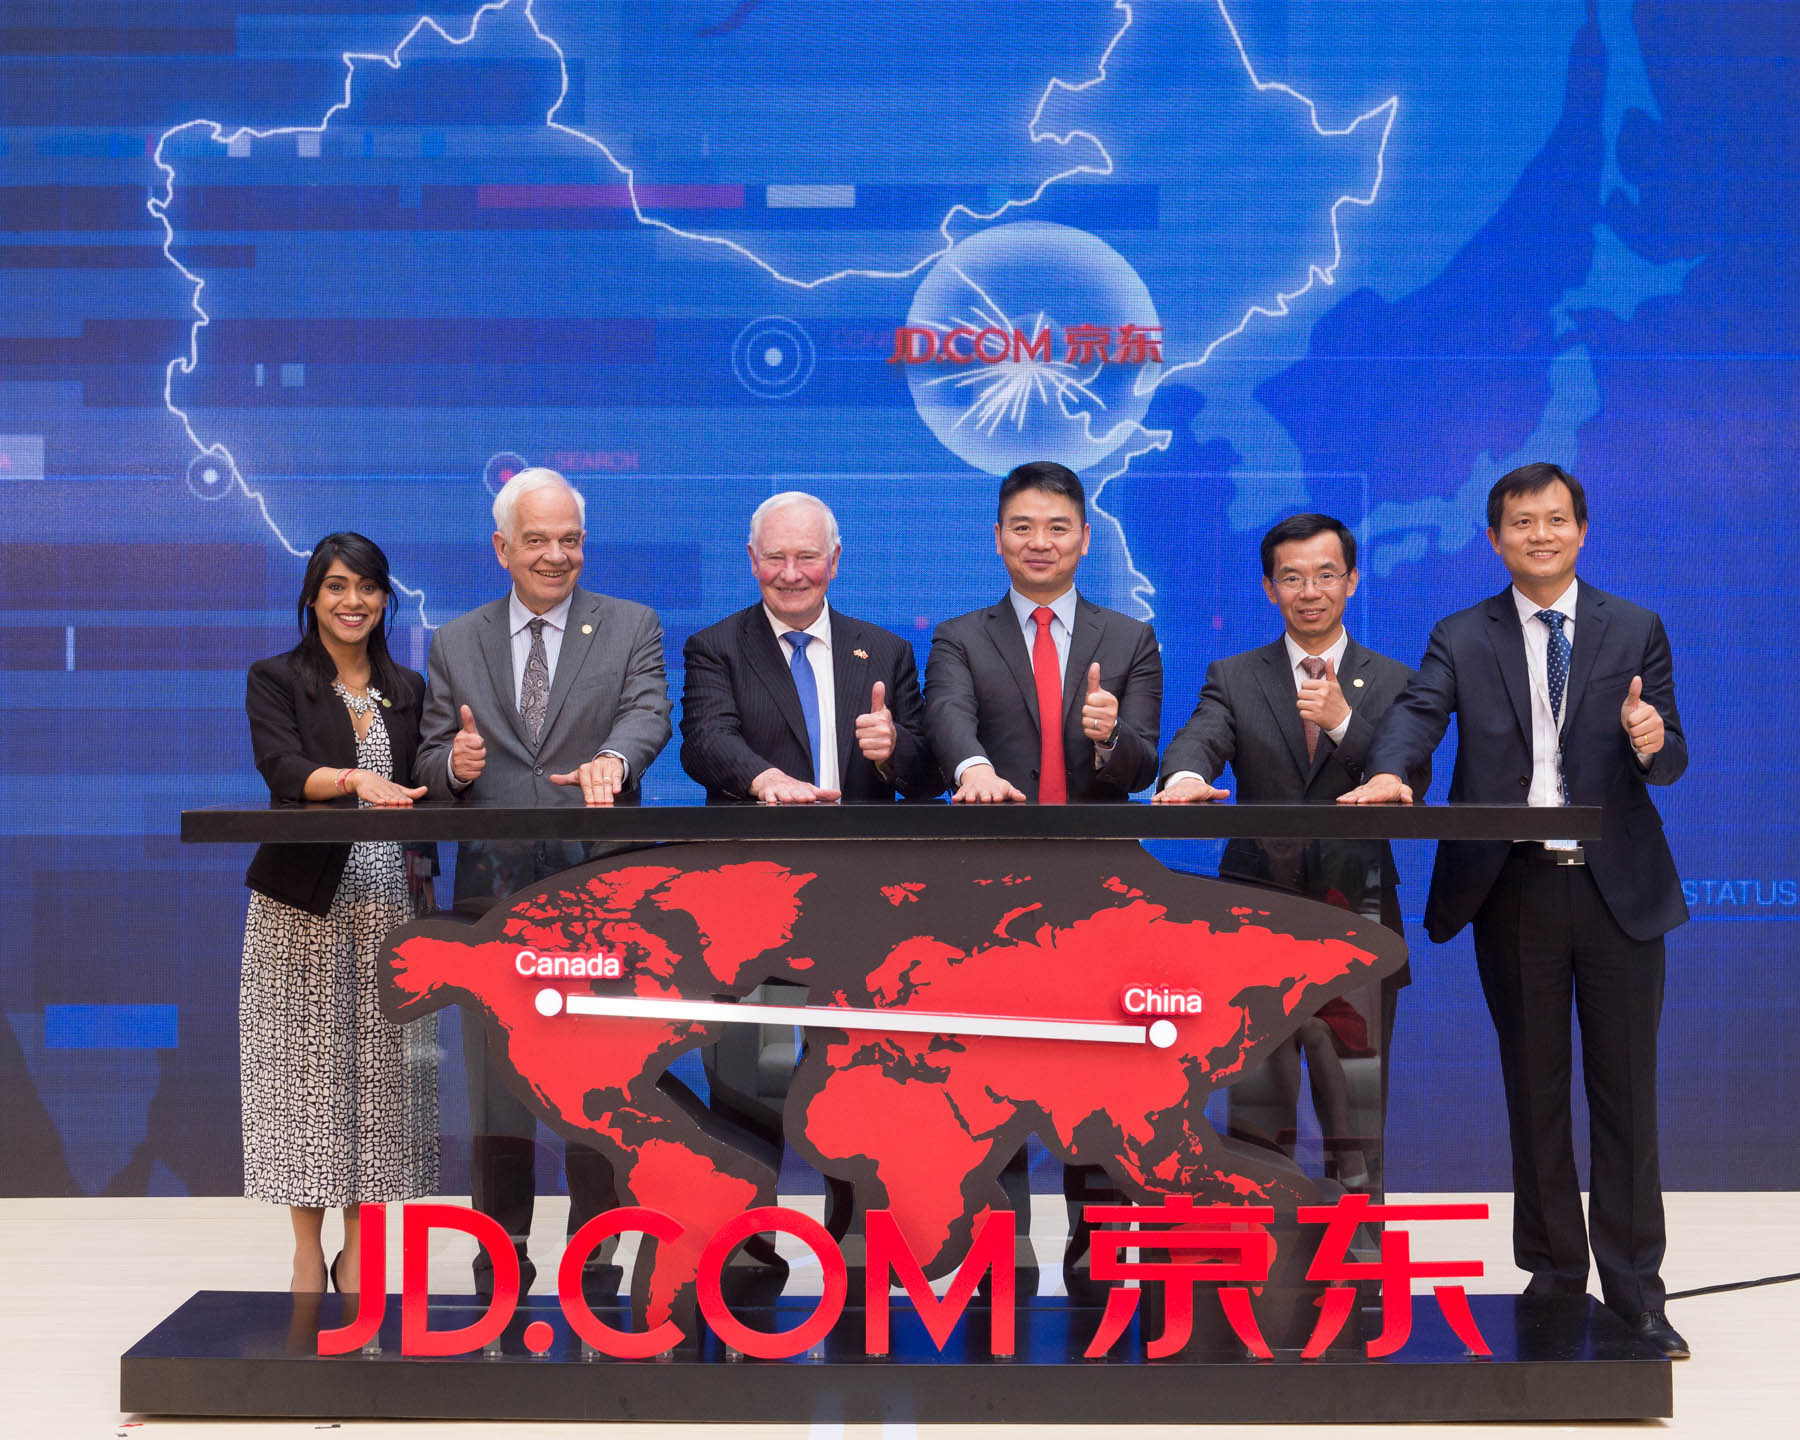 The Governor General and the Canadian delegation attended an event hosted by JD.com to support an online promotion featuring tourism as well as Canadian food and consumer products available on their website.